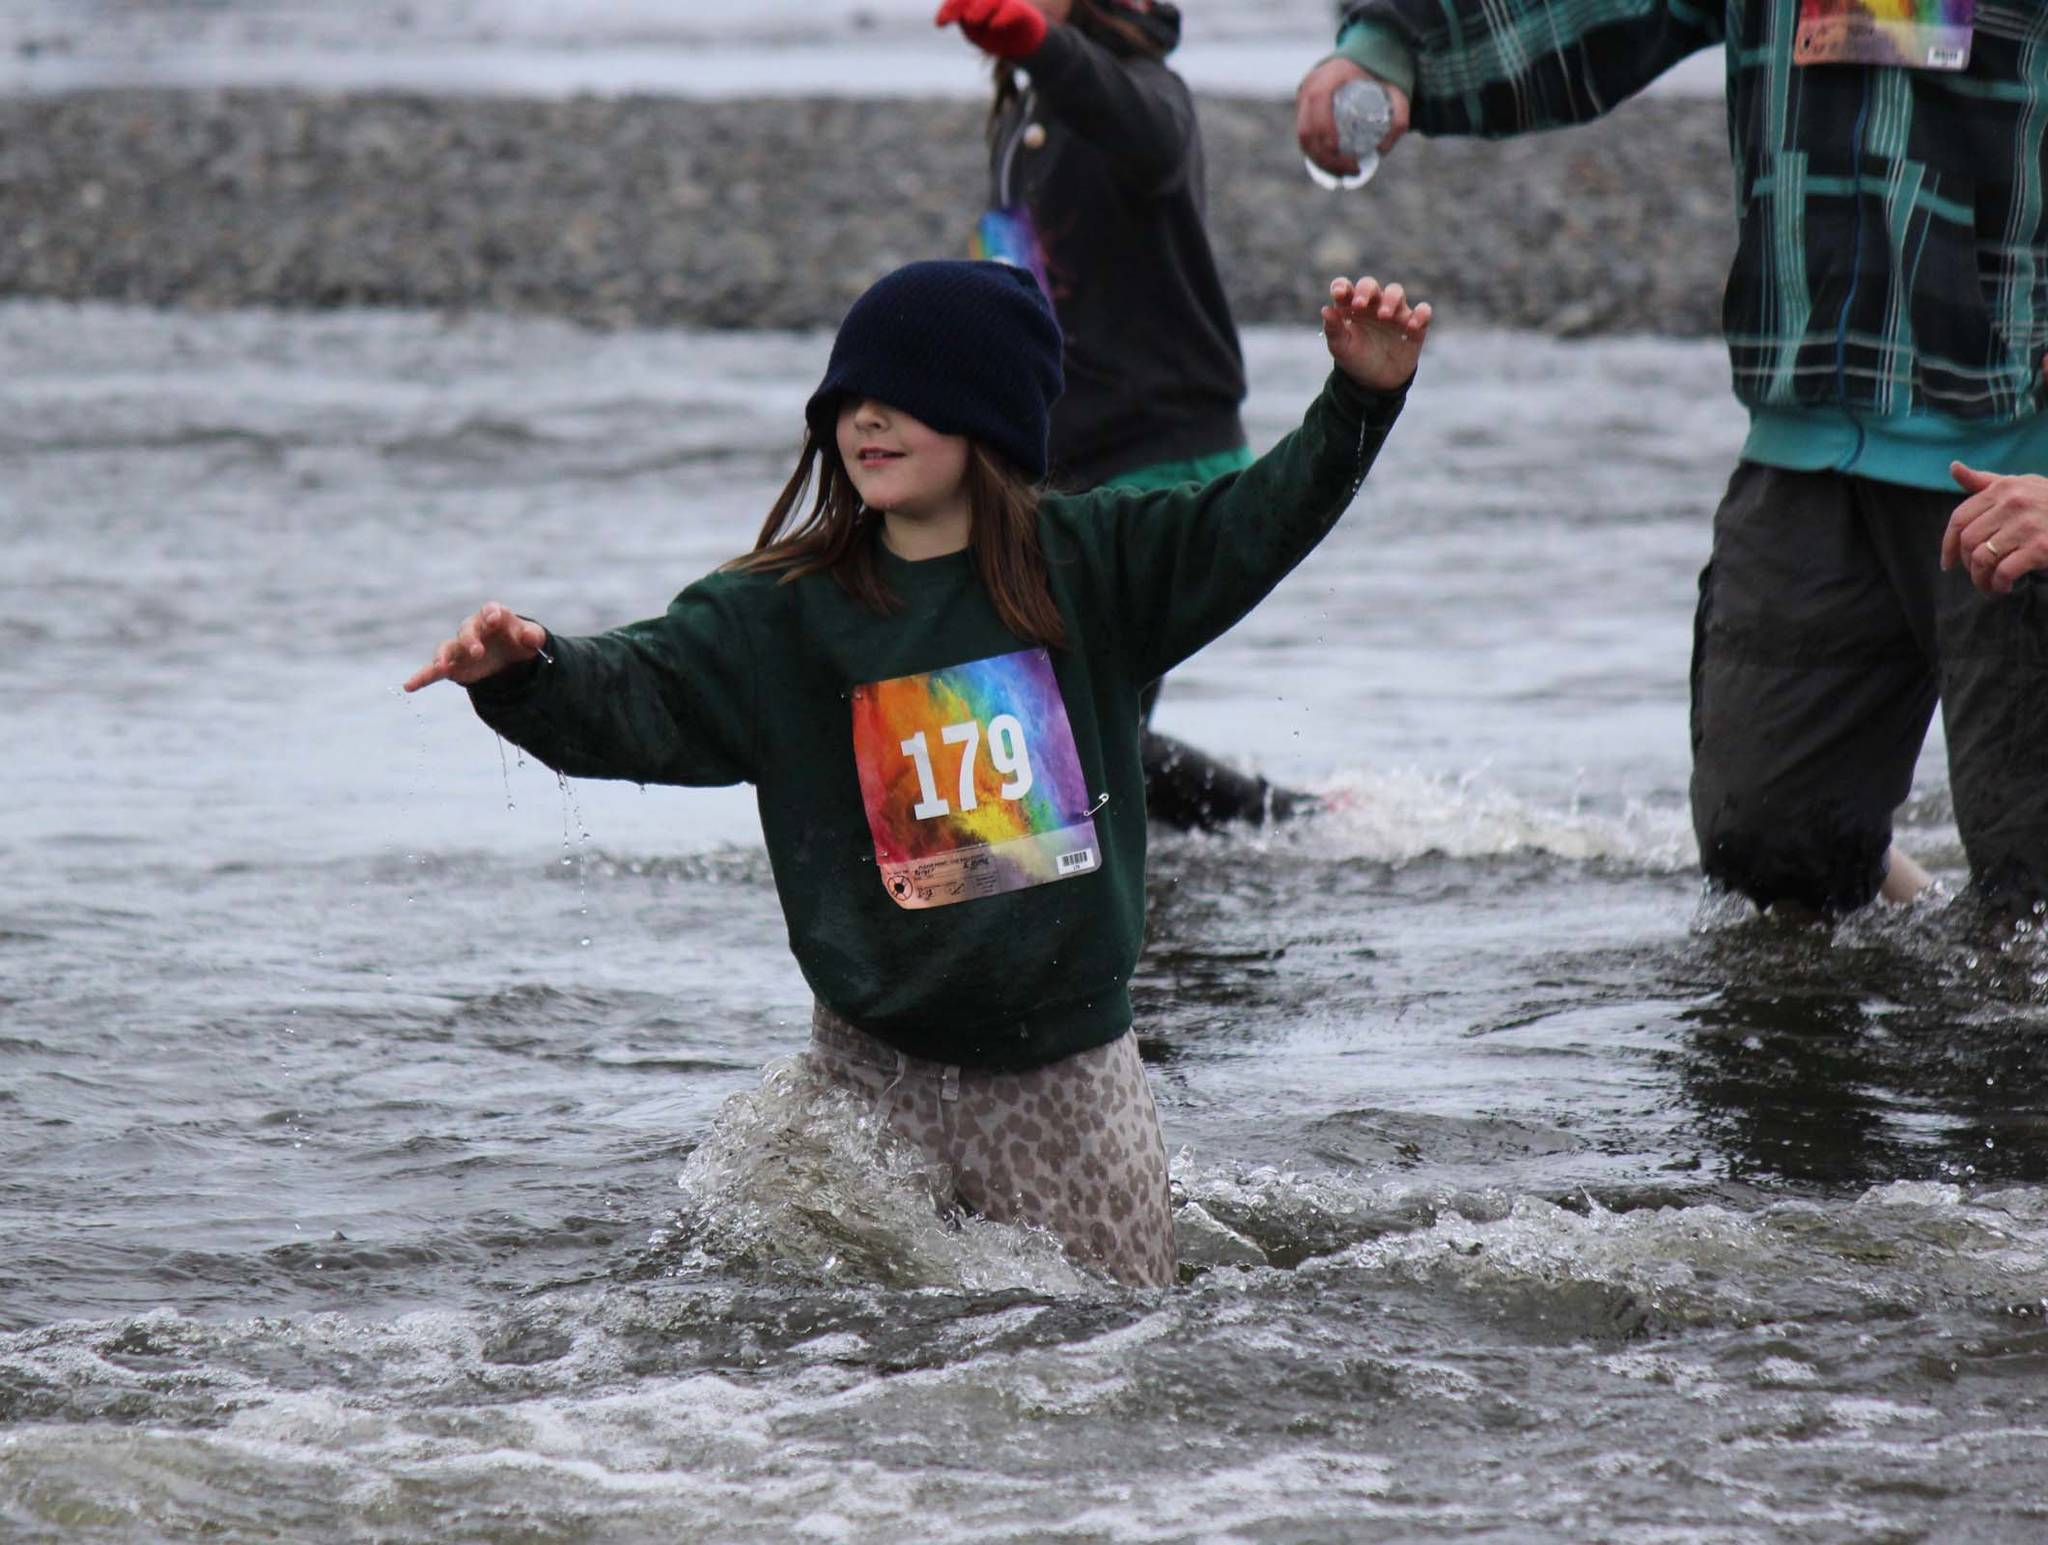 Unbothered by a drooping sweatshirt hood, Emma Berger, 179, relies on her feet to find a way across the gravel bottom of Deep Creek during the Clam Scramble held June 15, 2019 in Ninilchik, Alaska. (Photo by McKibben Jackinsky)